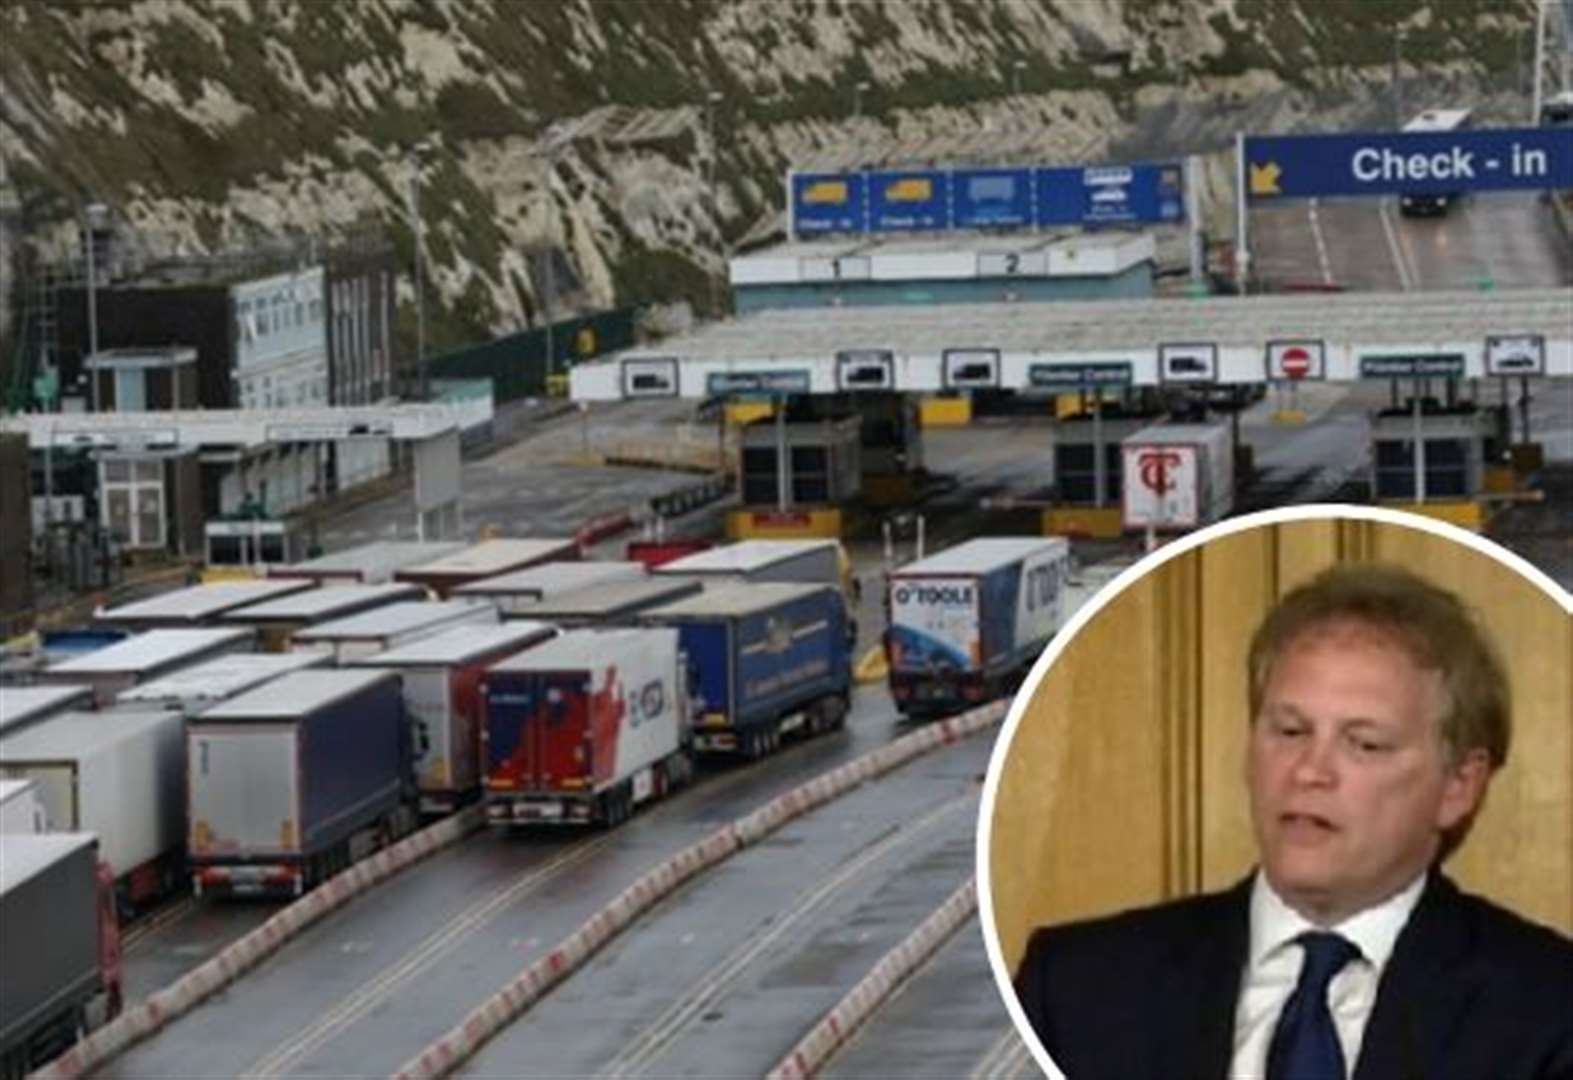 Brexit fears on gridlock in Kent 'unfounded'